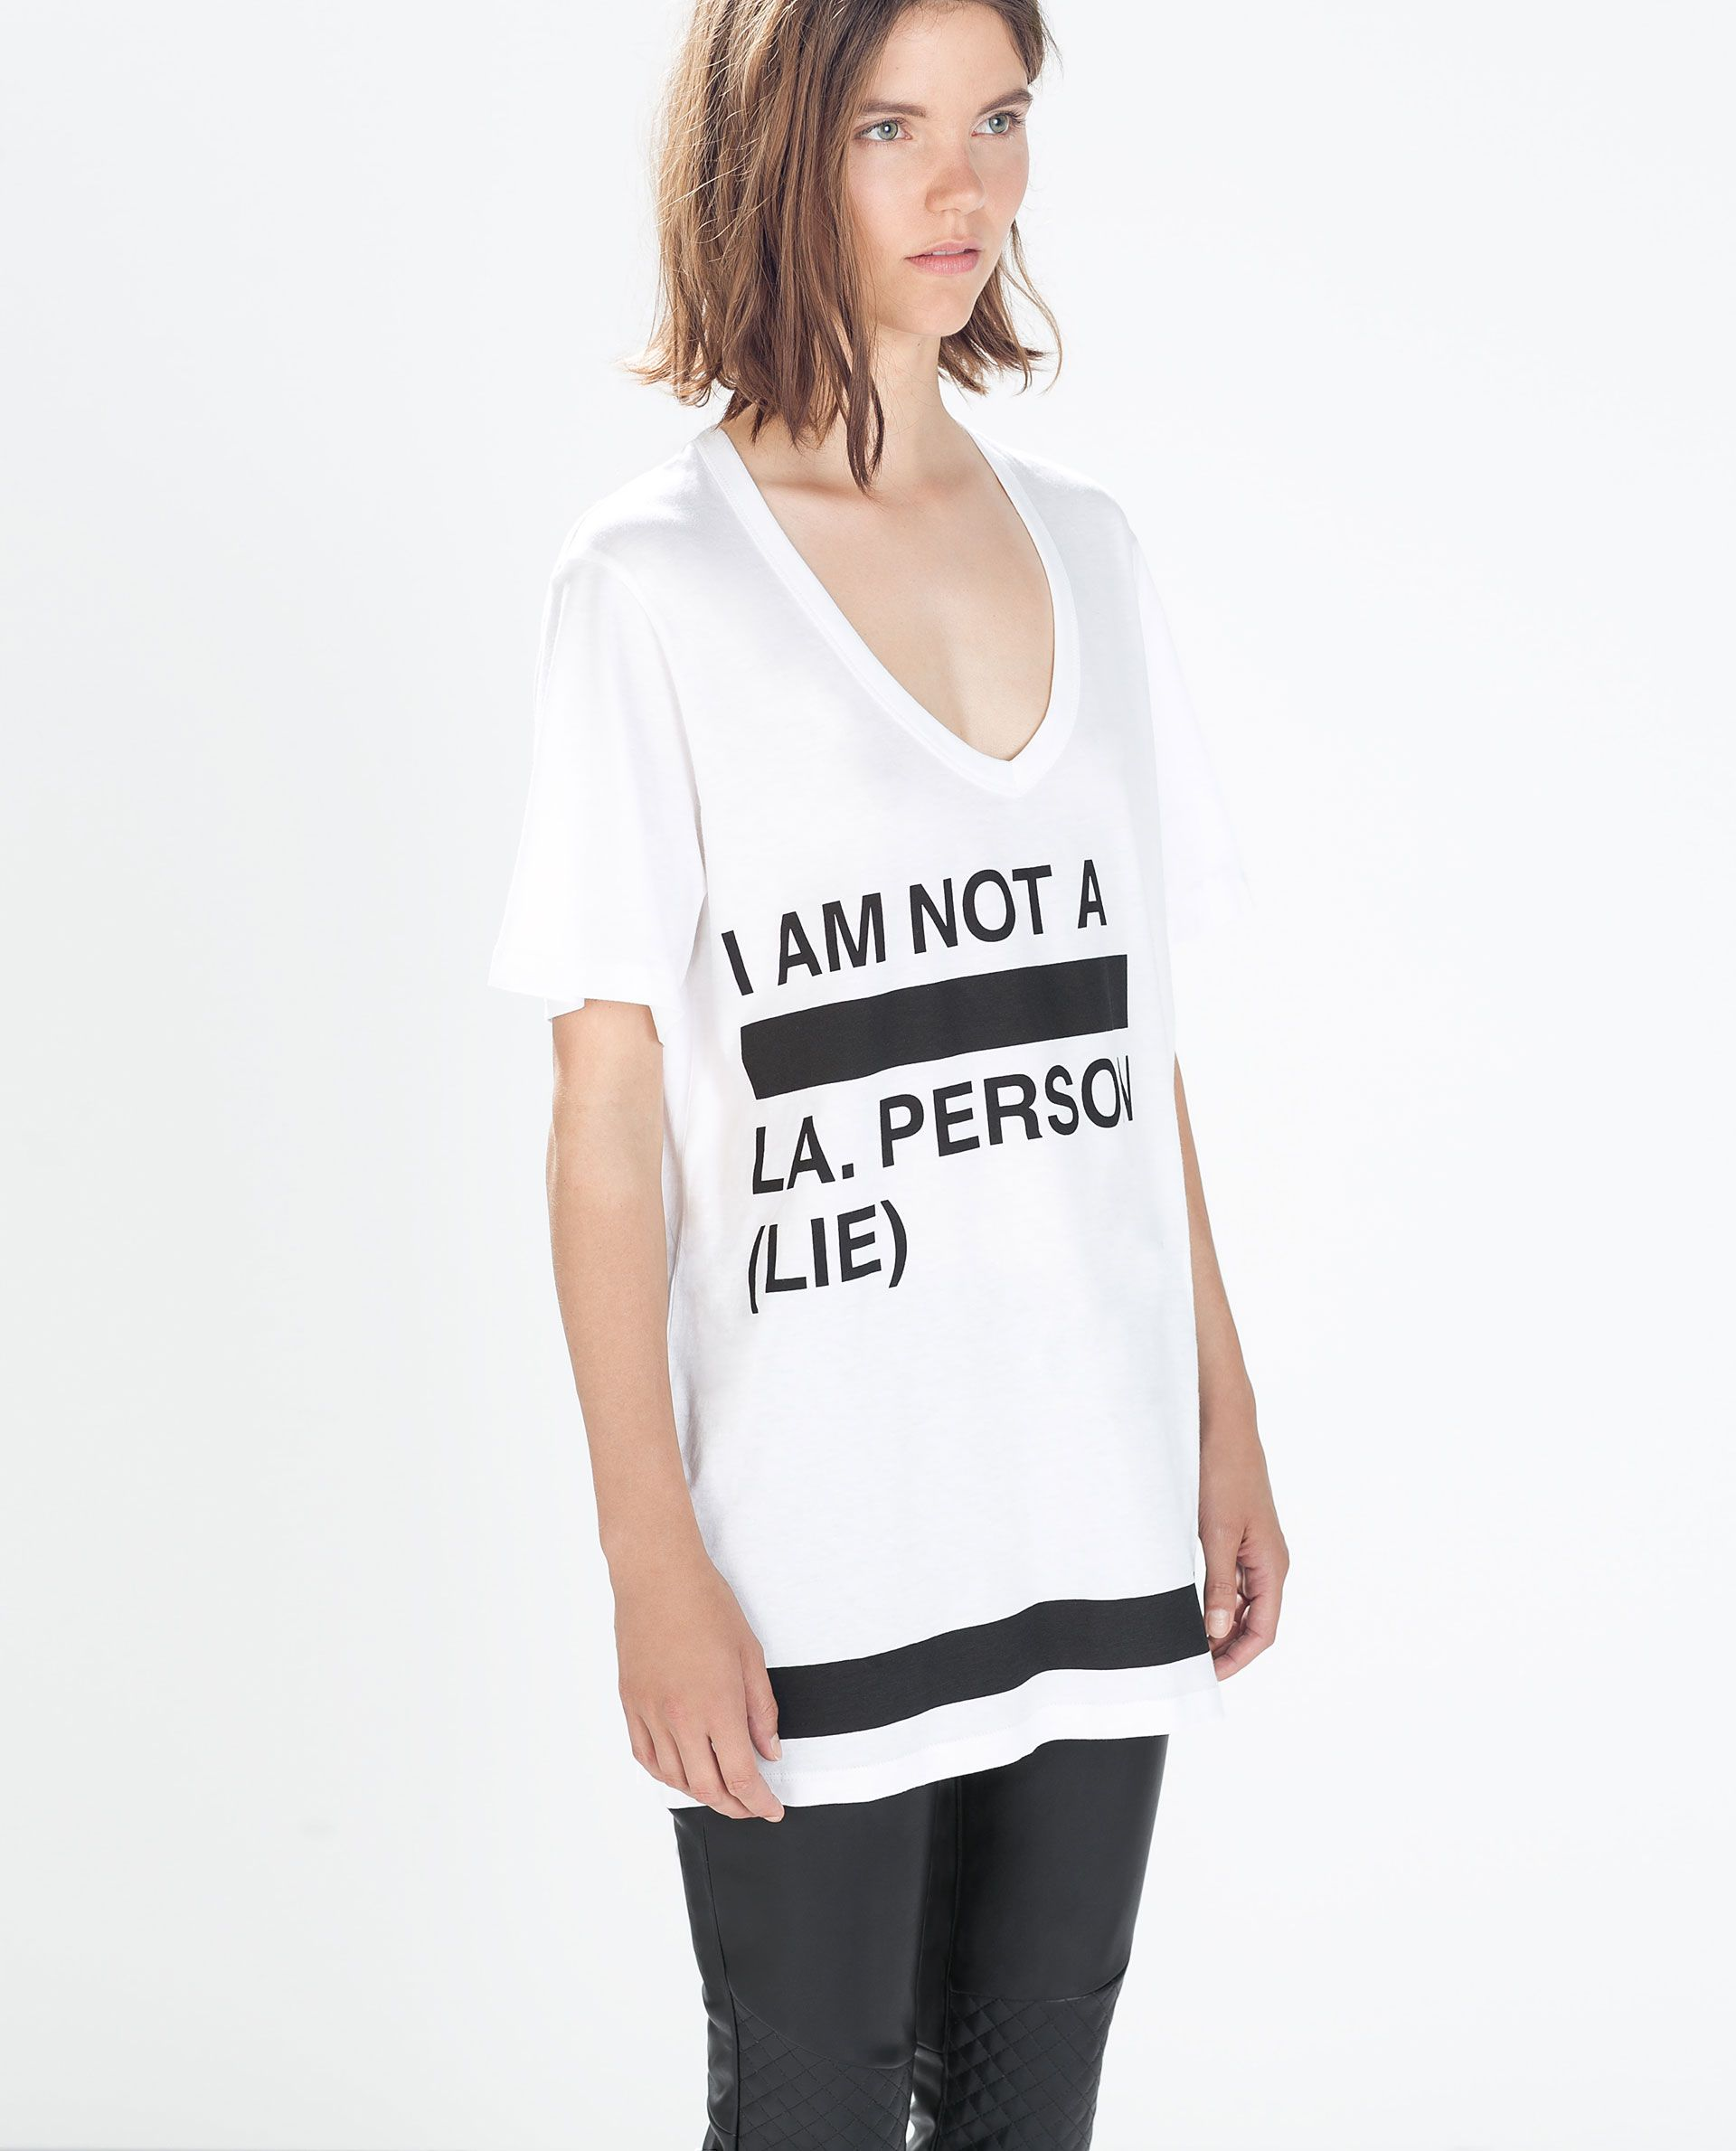 dc54d1227c SLOGAN T-SHIRT from Zara | Black-ish & White-ish shit | Women slogan ...